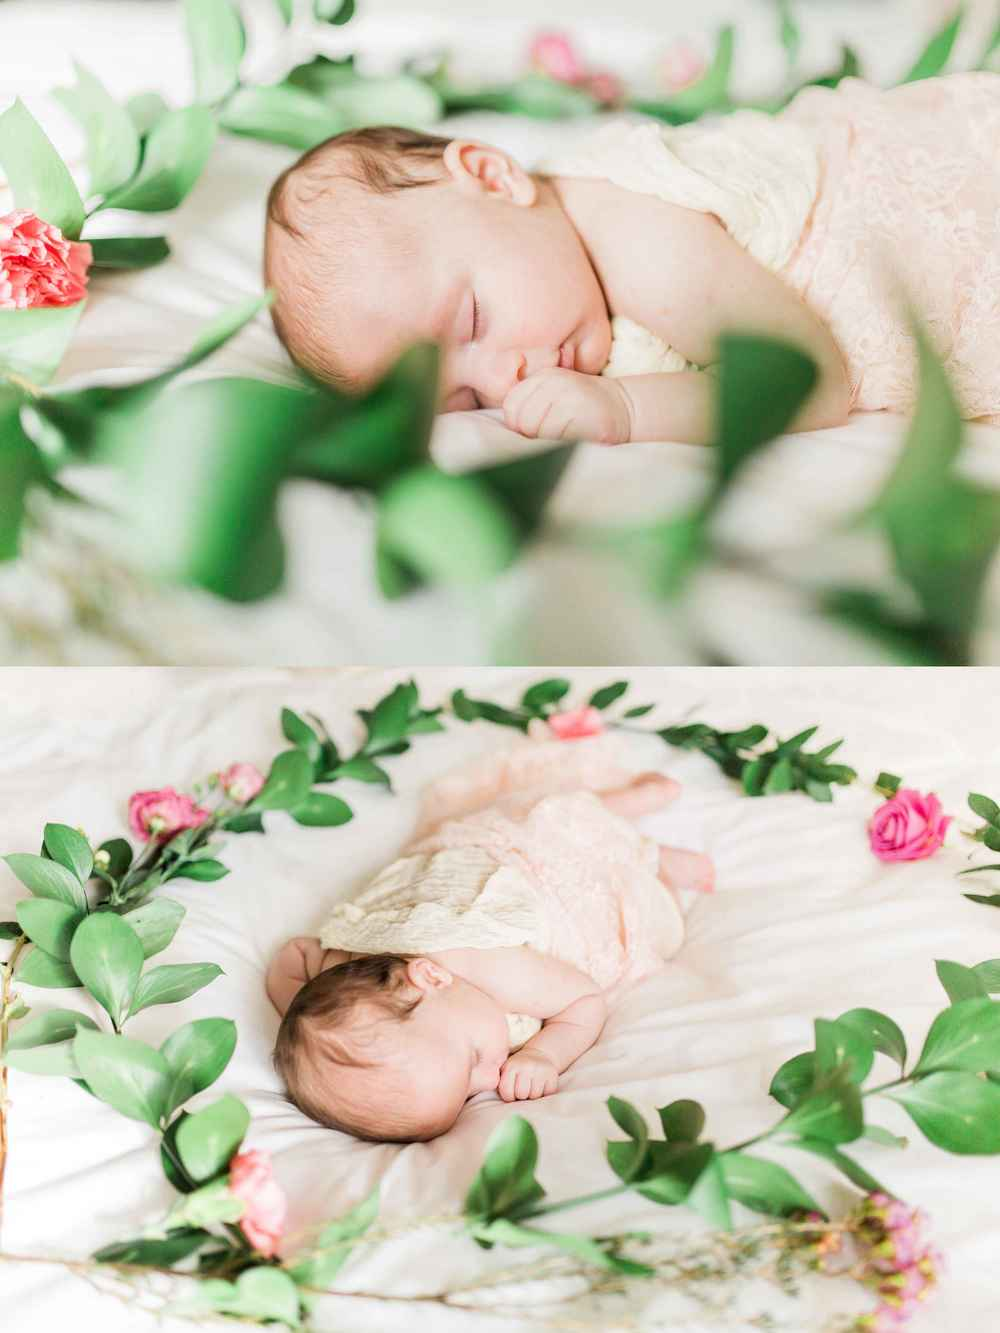 Newborn Photography Lifestyle Shoot-366.jpg